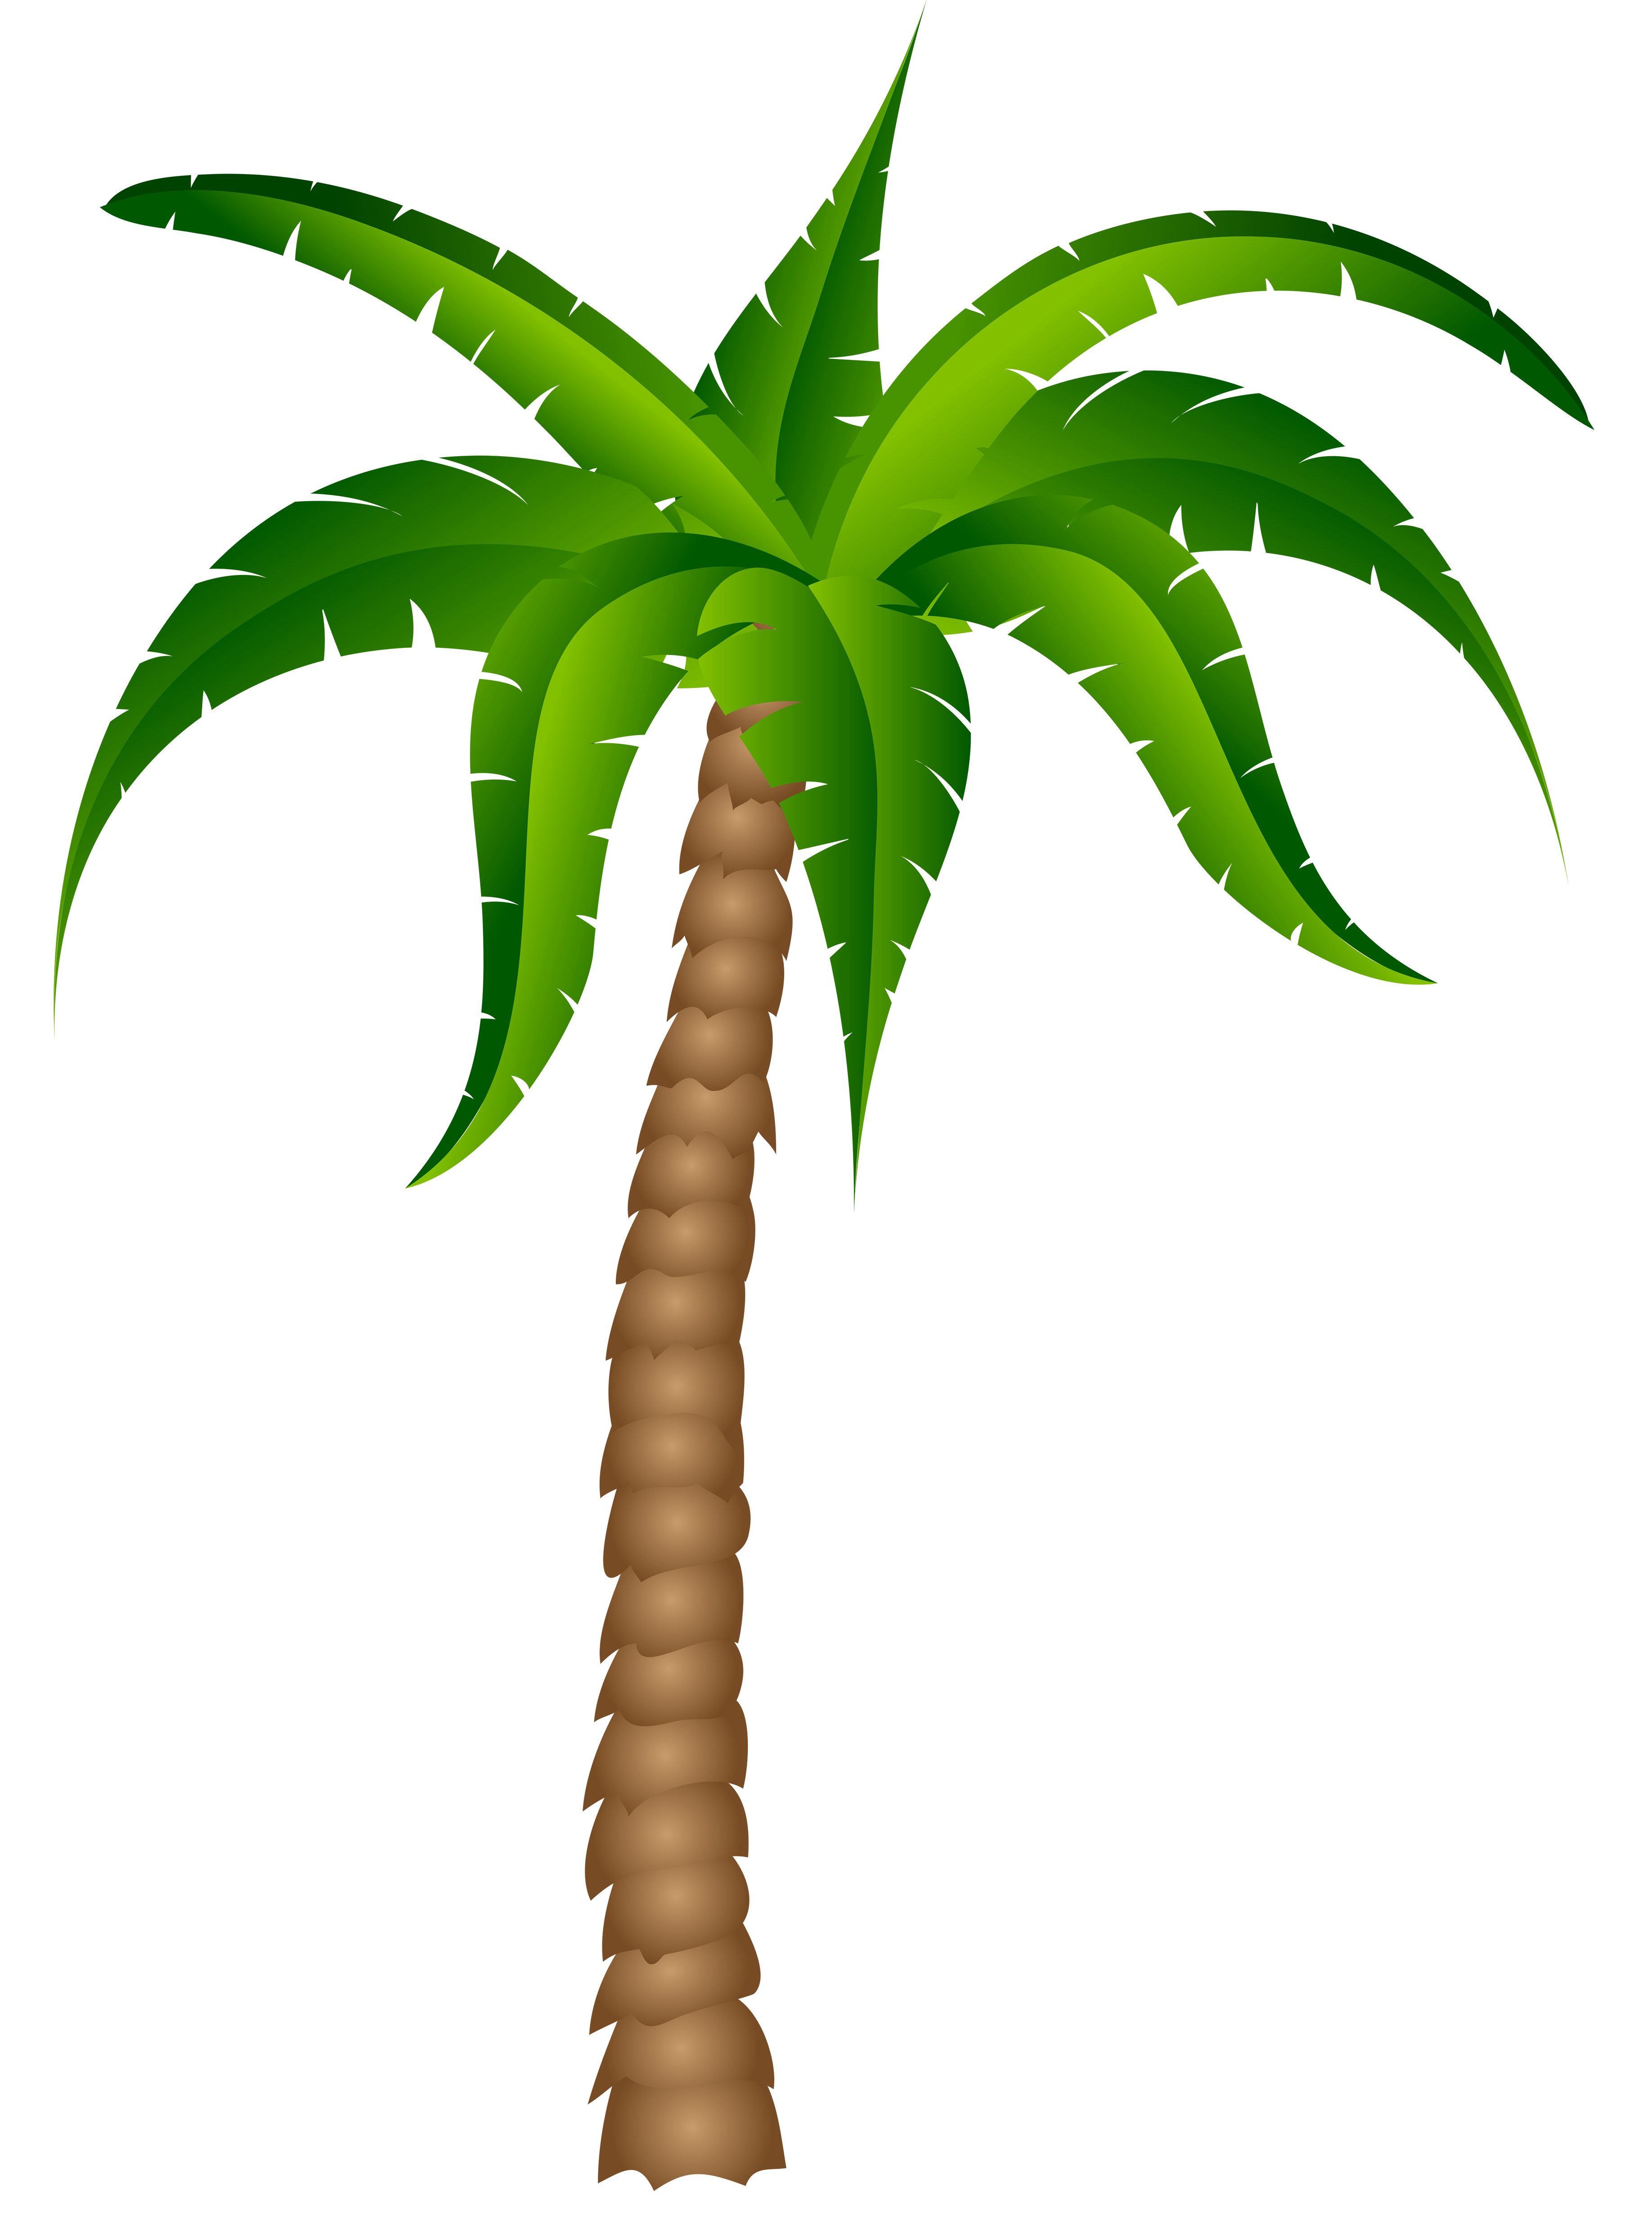 Palm tree transparent background png. Drawing at getdrawings com